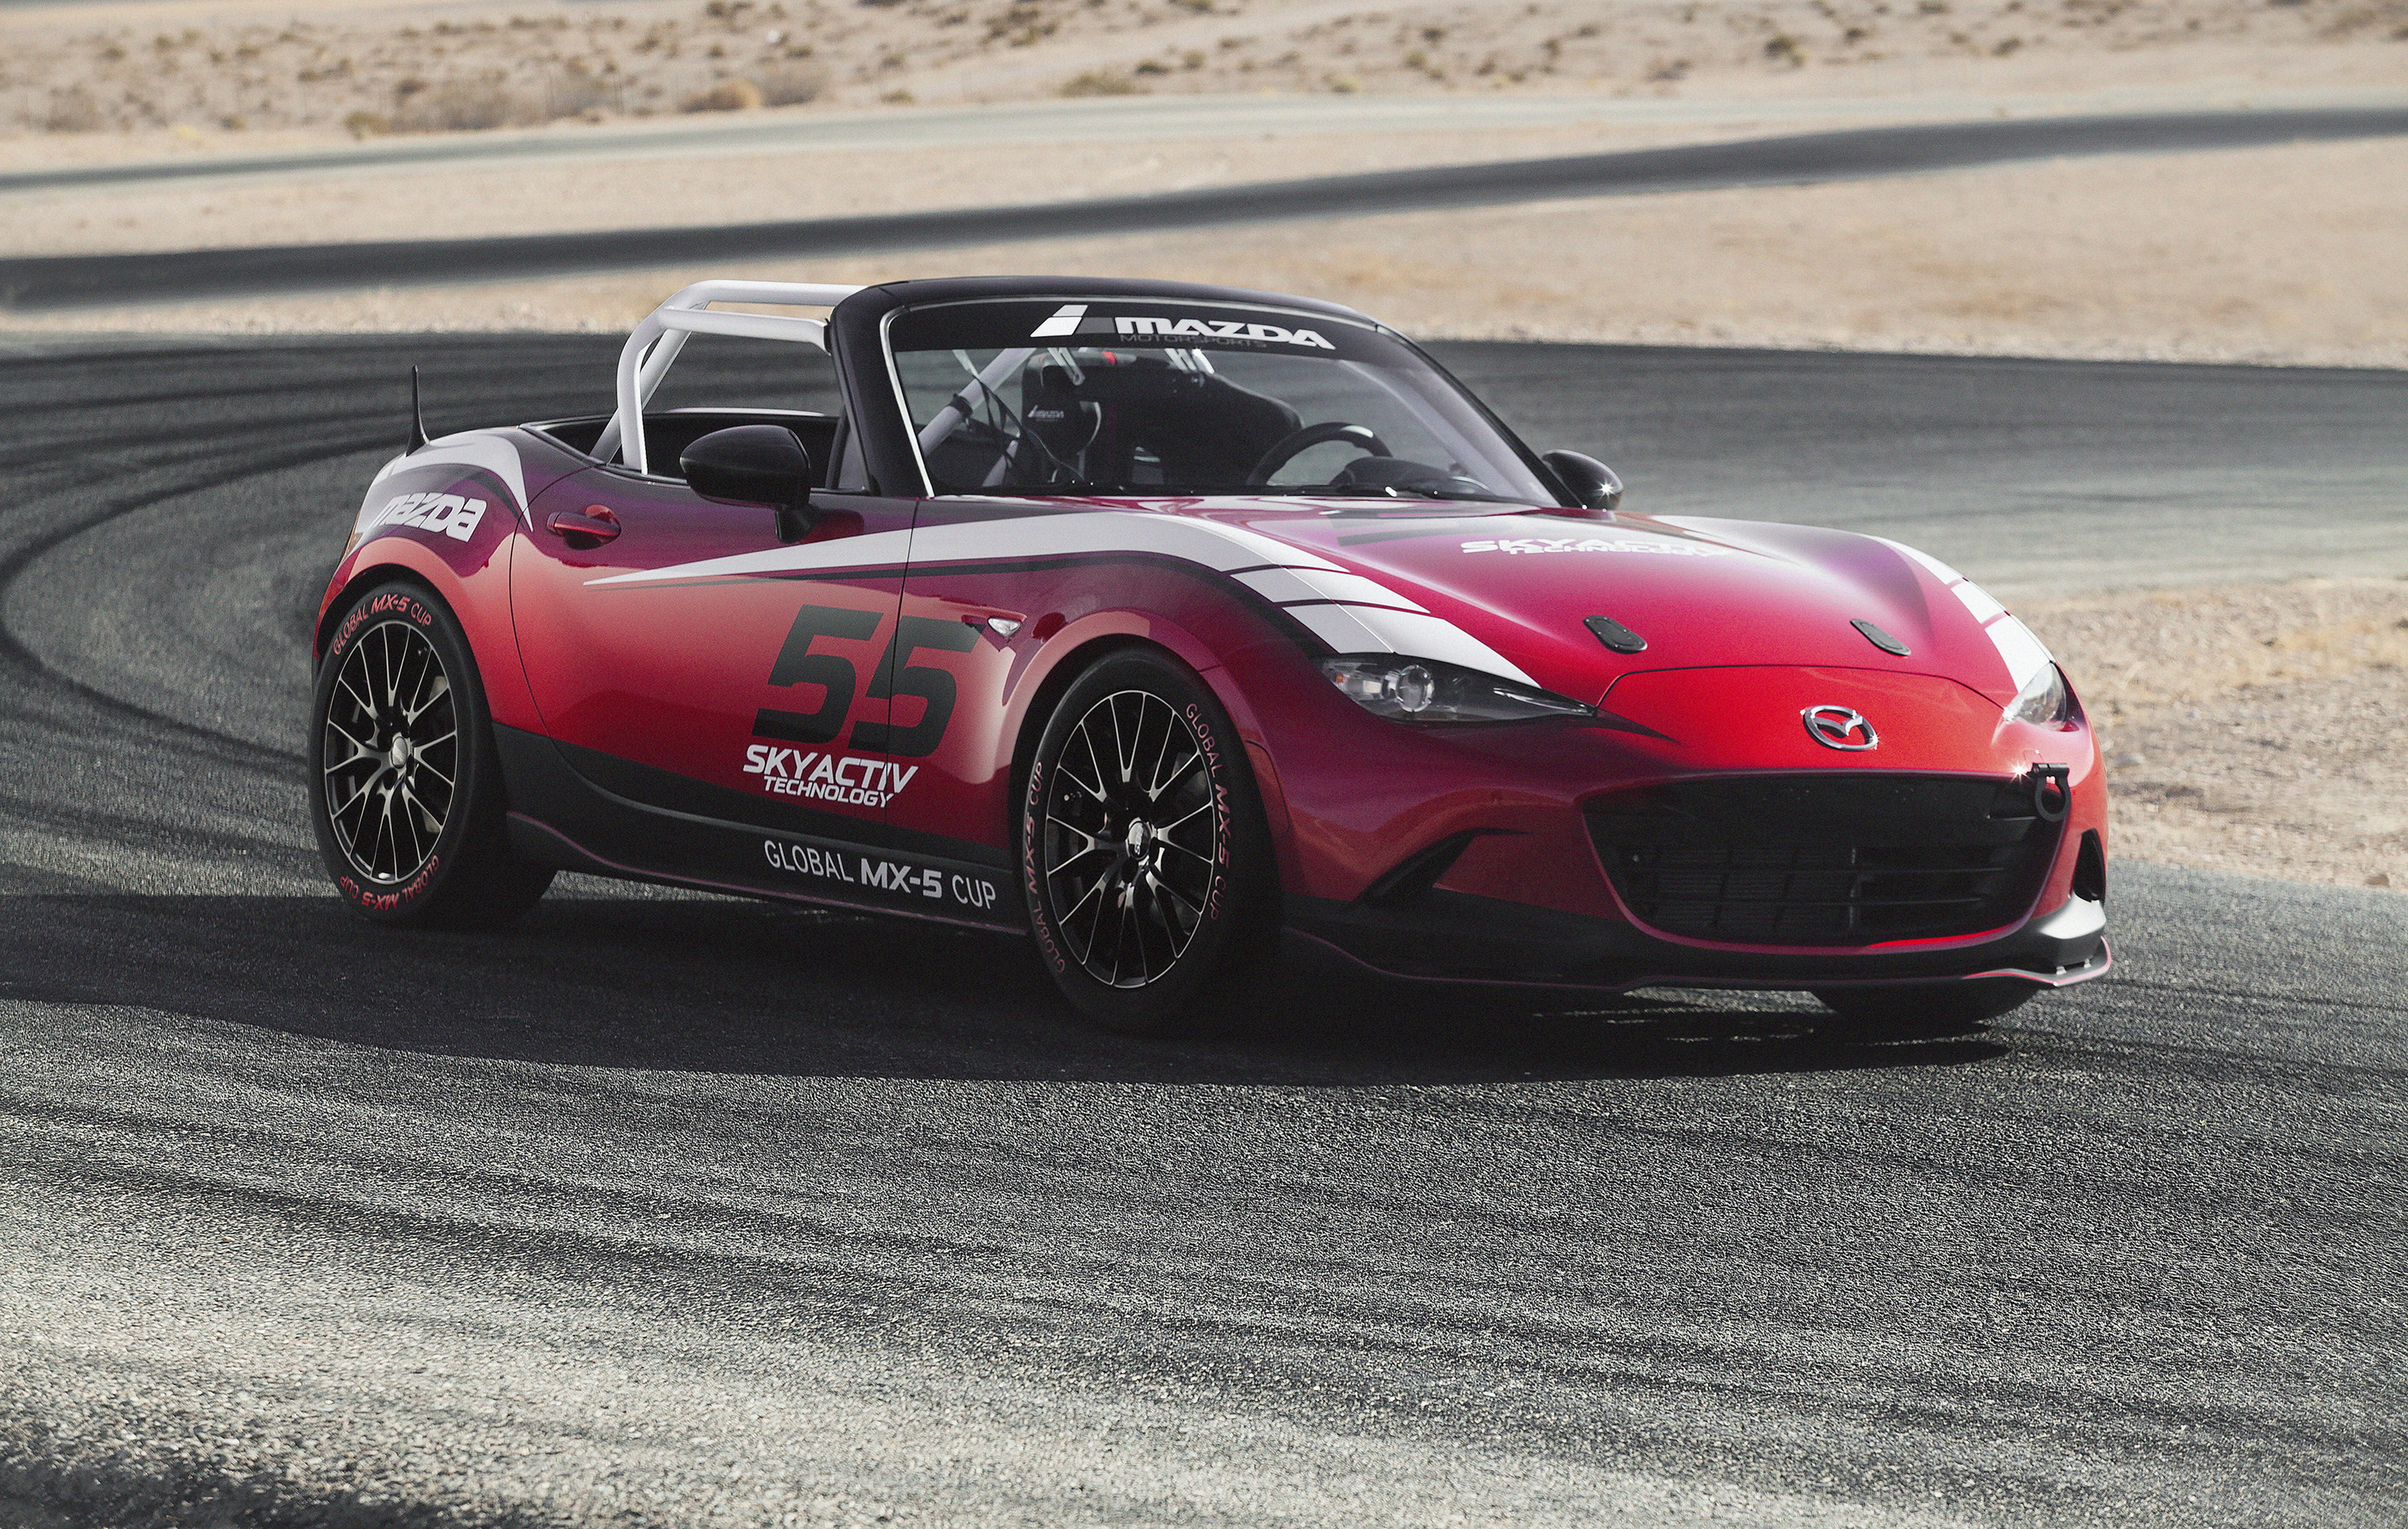 2016 mazda mx-5 miata cup race car